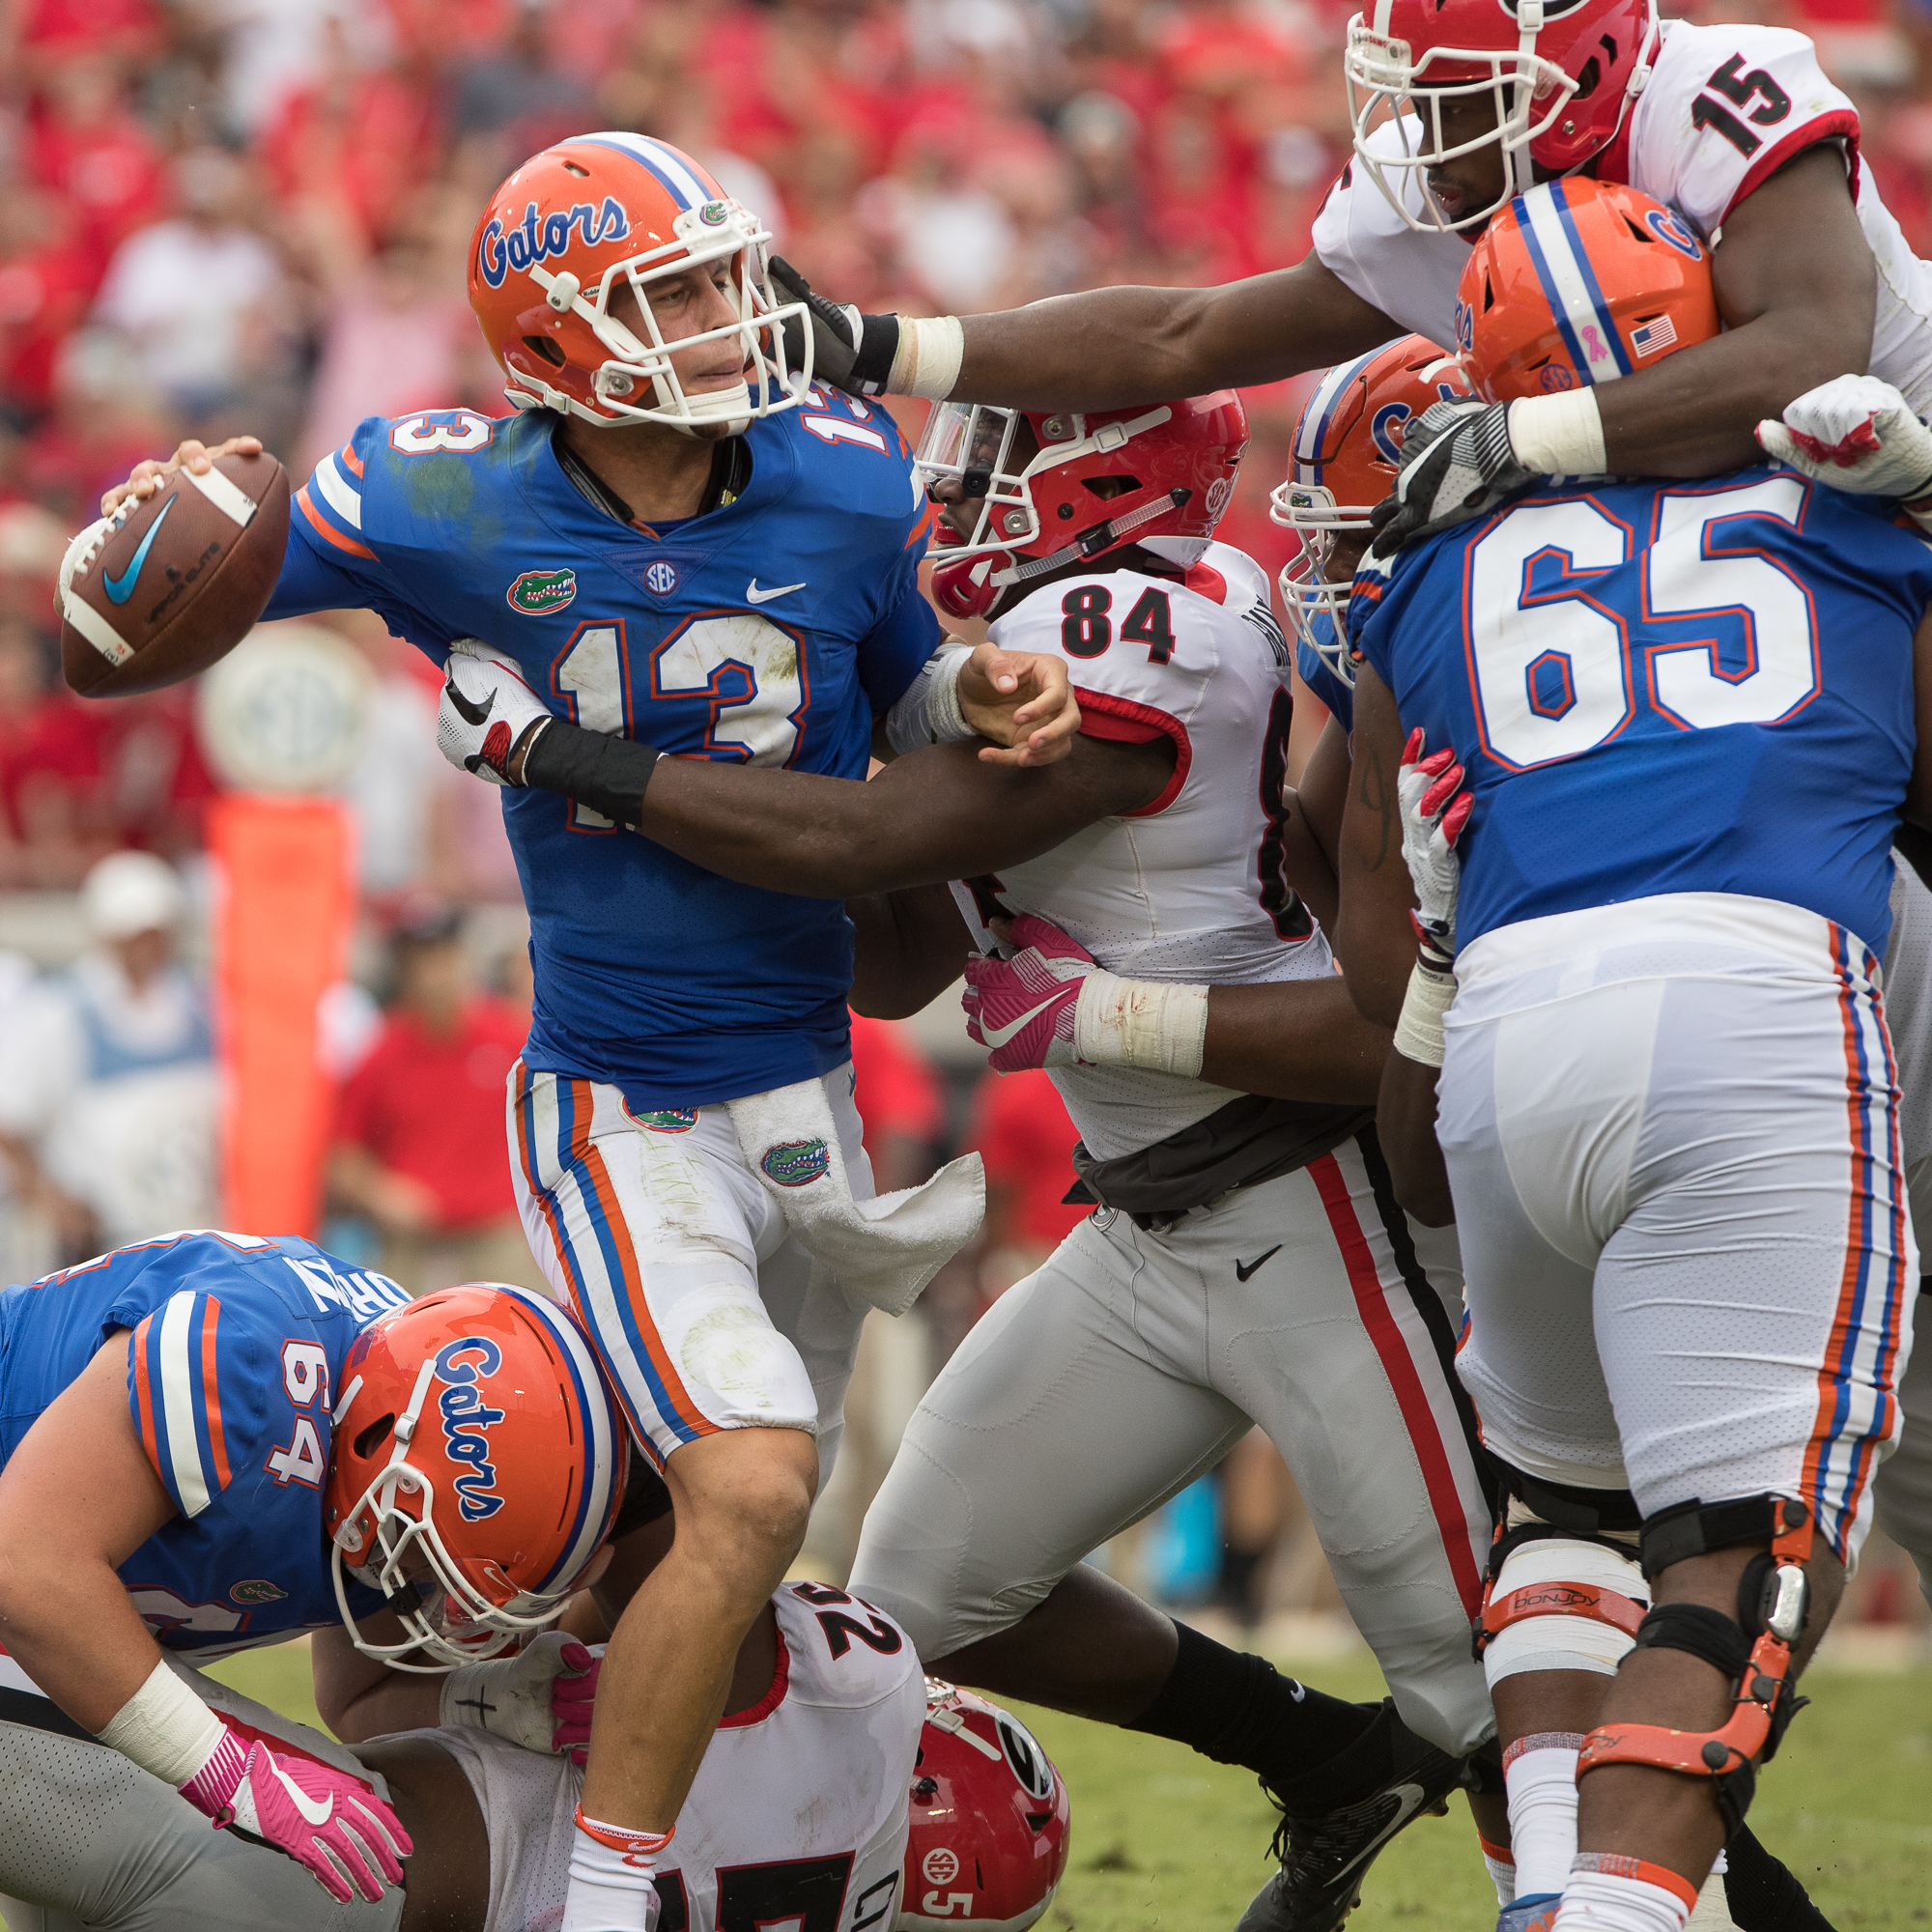 Feleipe Franks looks for somewhere to throw as the Georgia defense attacks./STEVEN MUNCIE